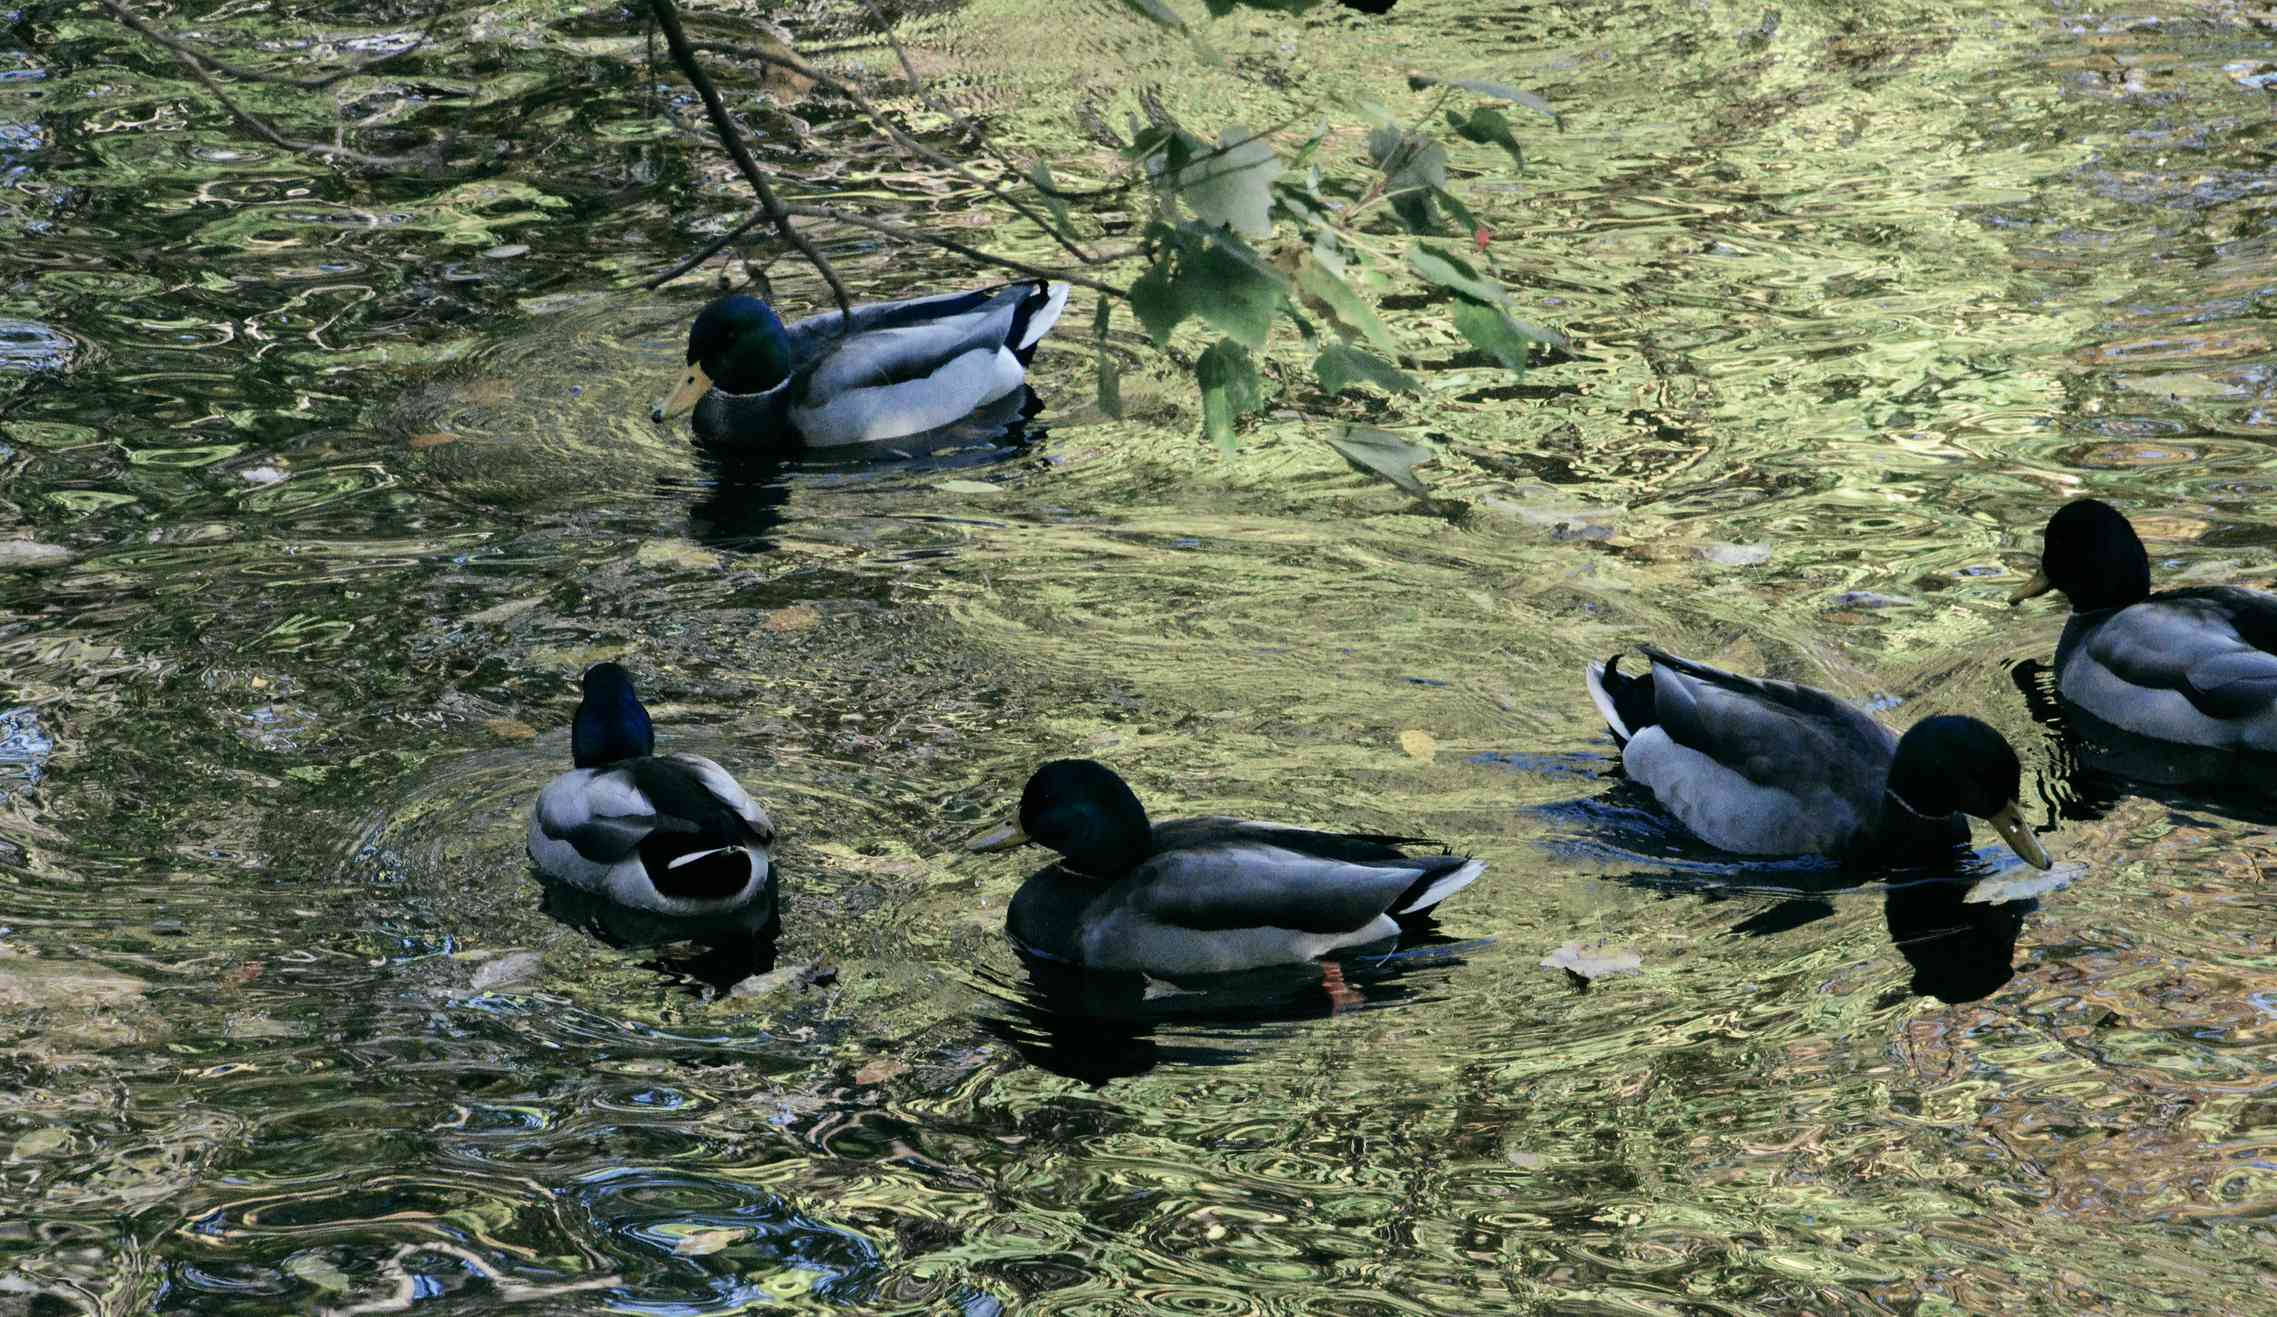 Ducks at Pennypack park swim in a pond